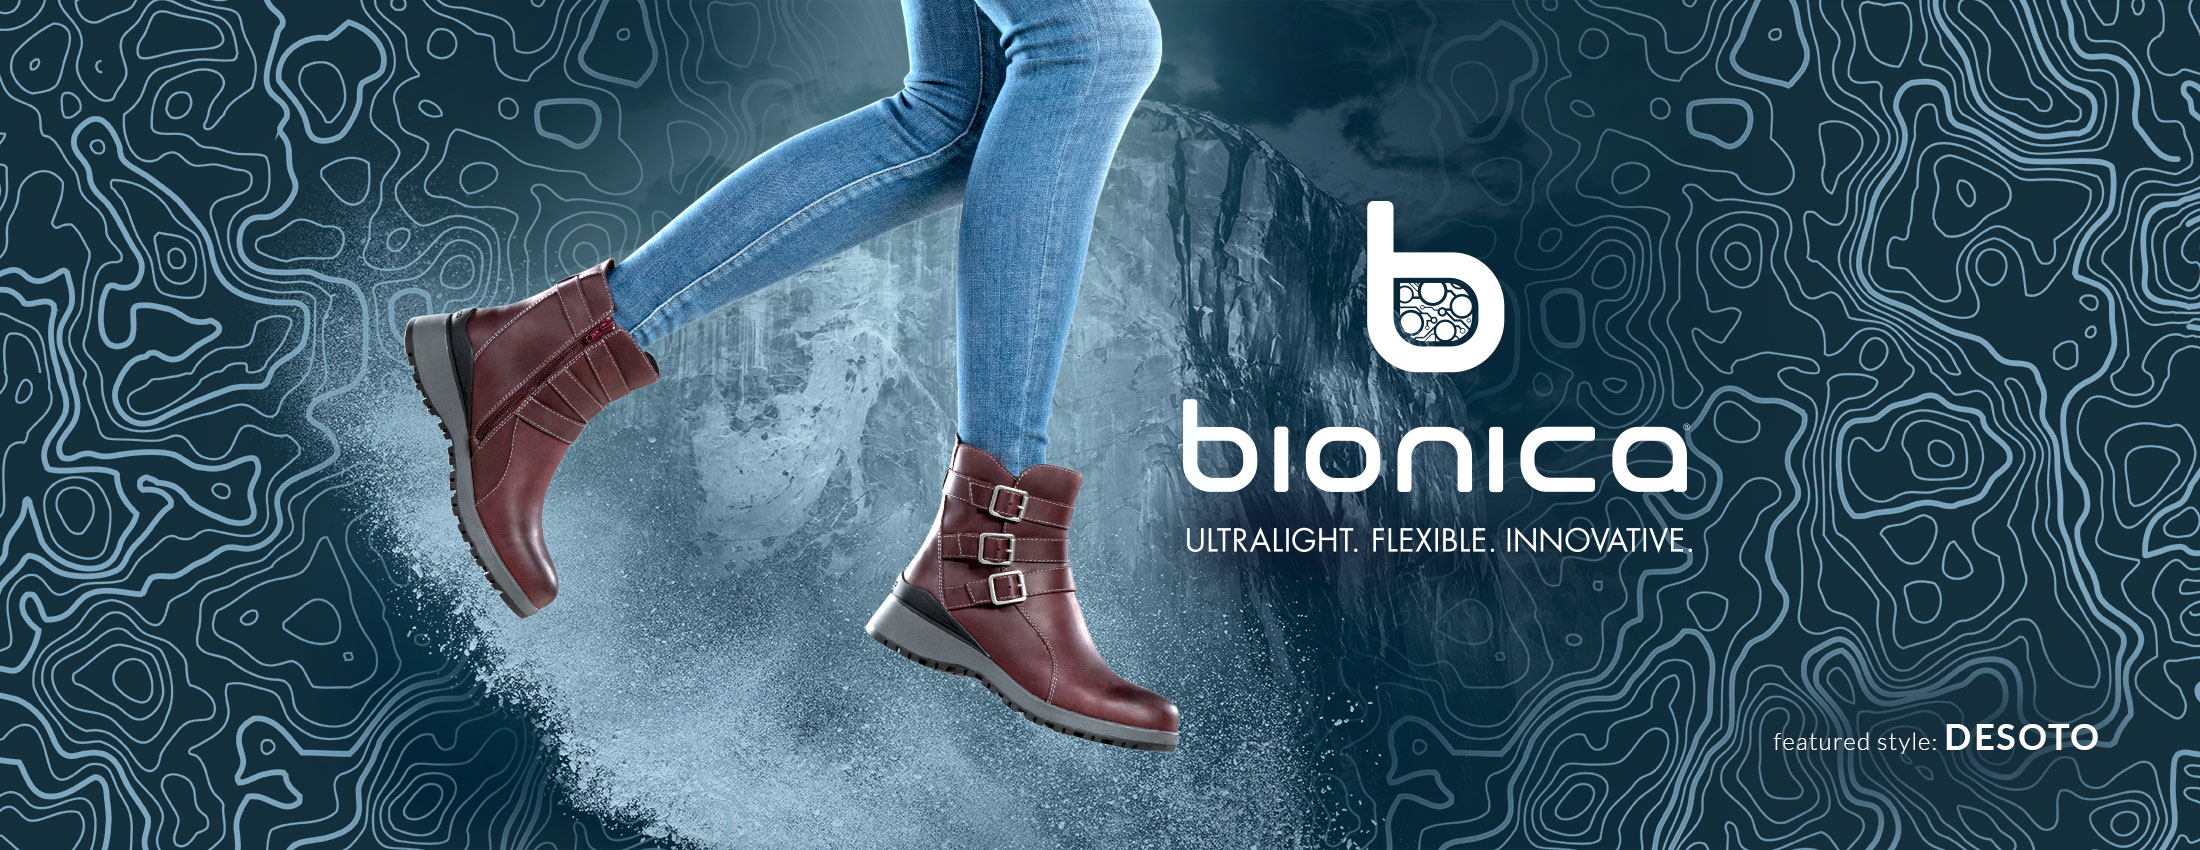 Bionica: Ultralight, Flexible, Innovative. Featured style: Desoto boot, shown in eggplant purple on jumping model wearing jeans